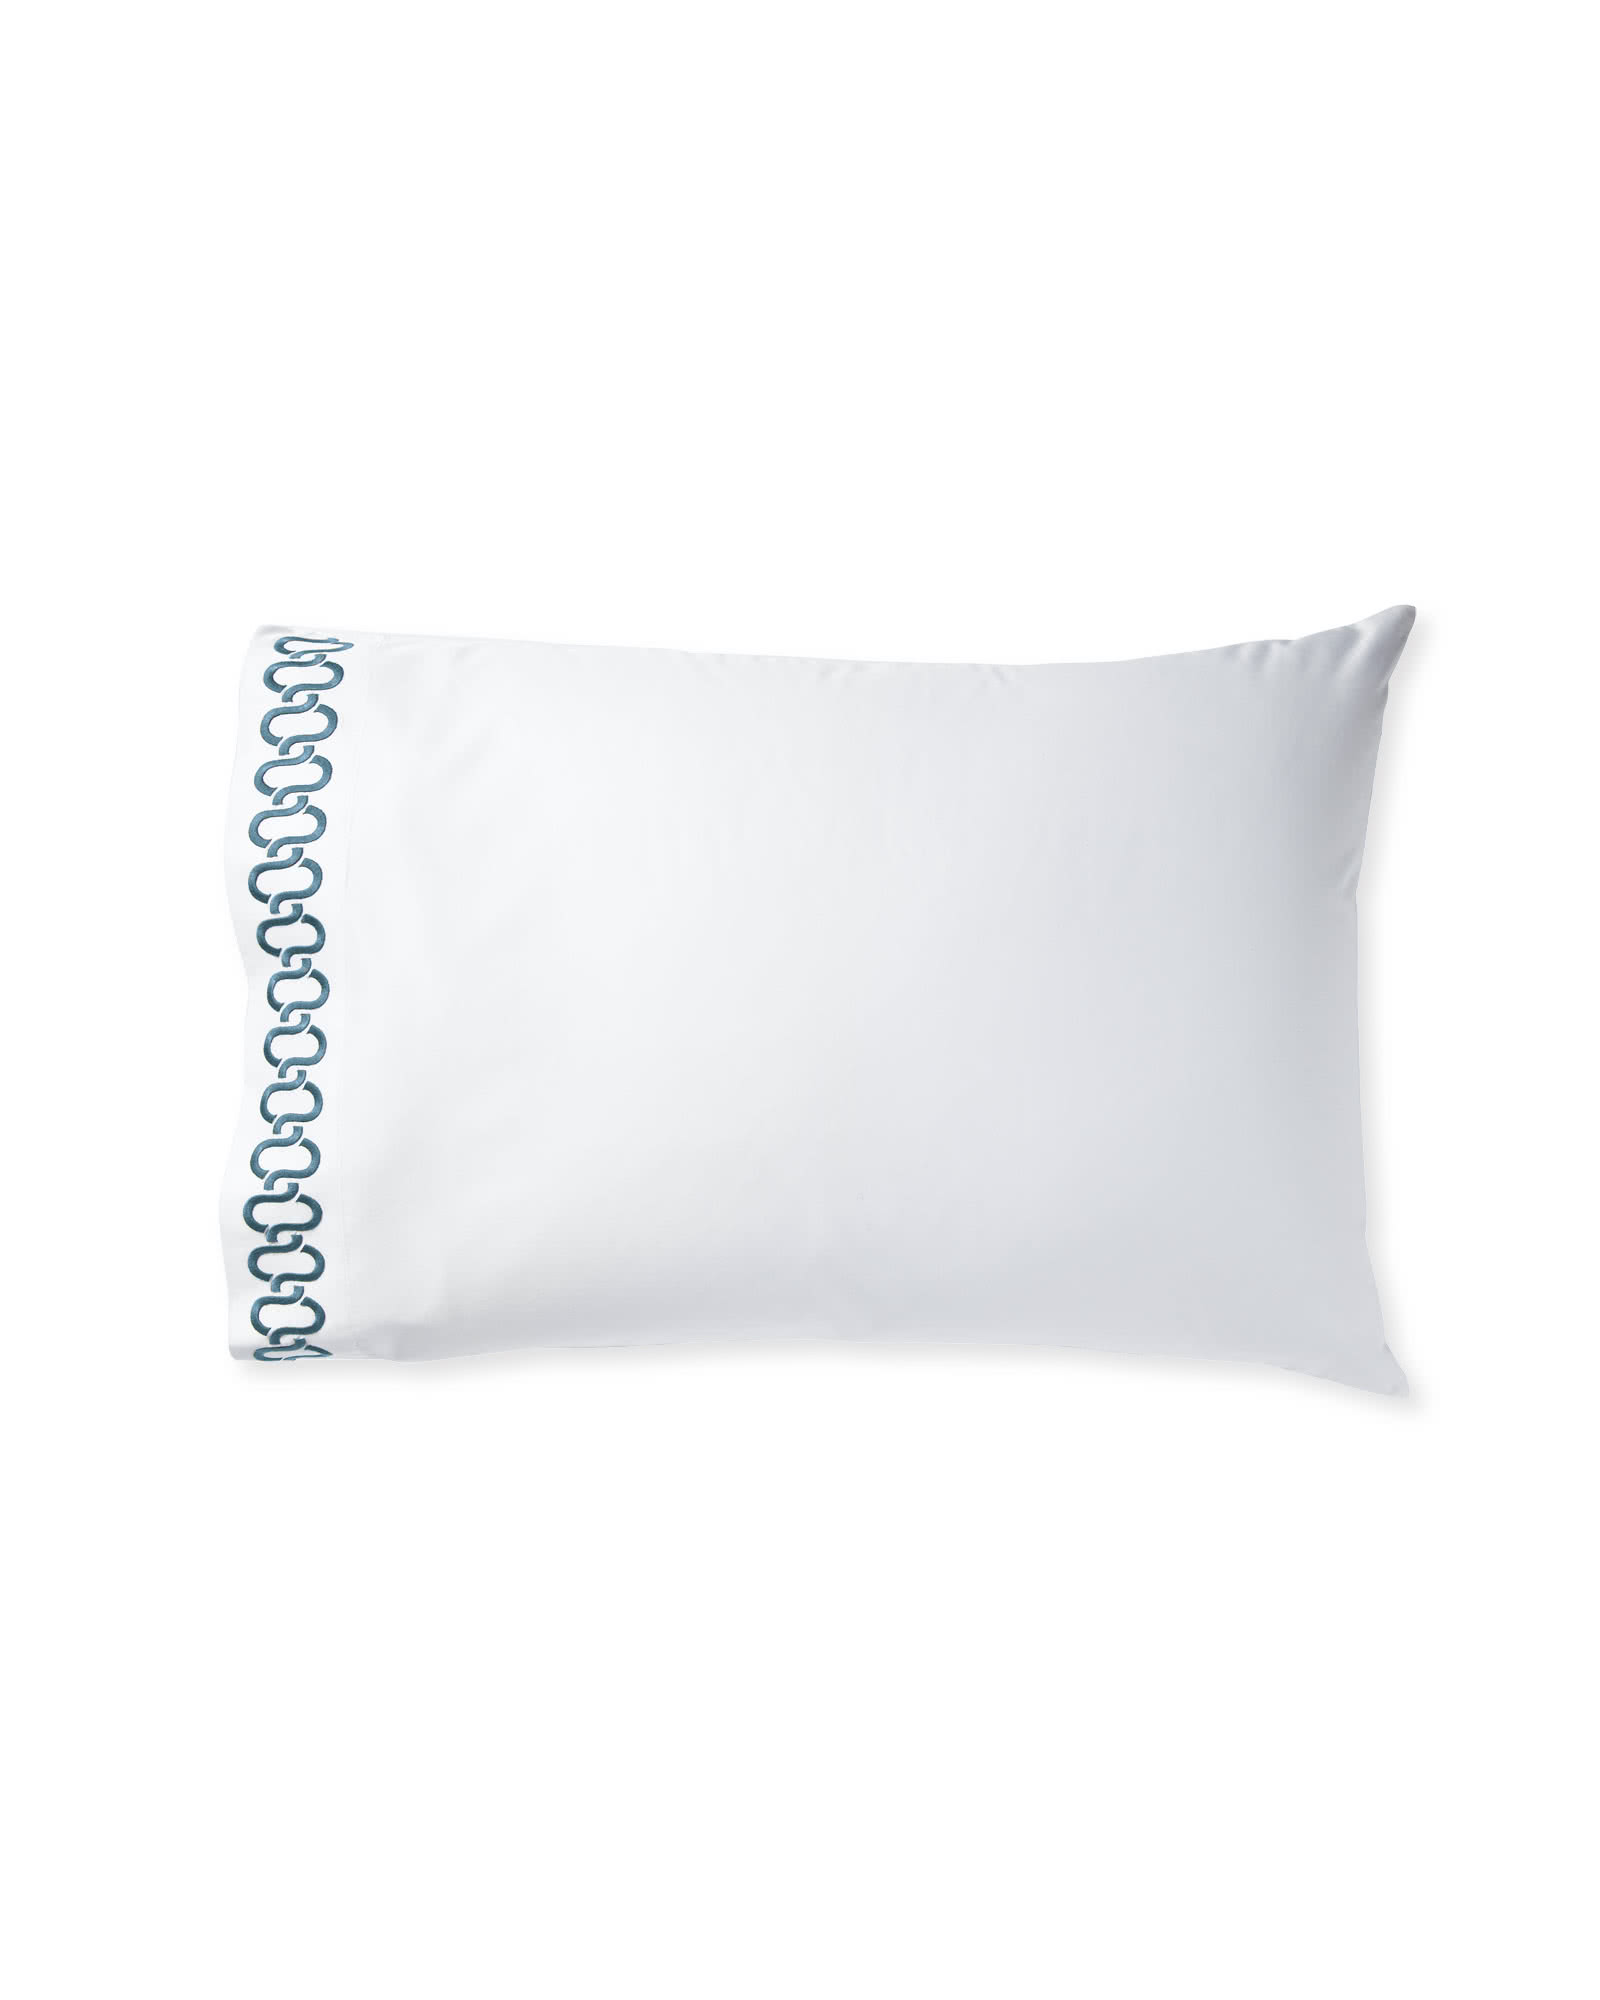 Extra Savoy Links Embroidered Pillowcases (Set of 2) - Marine